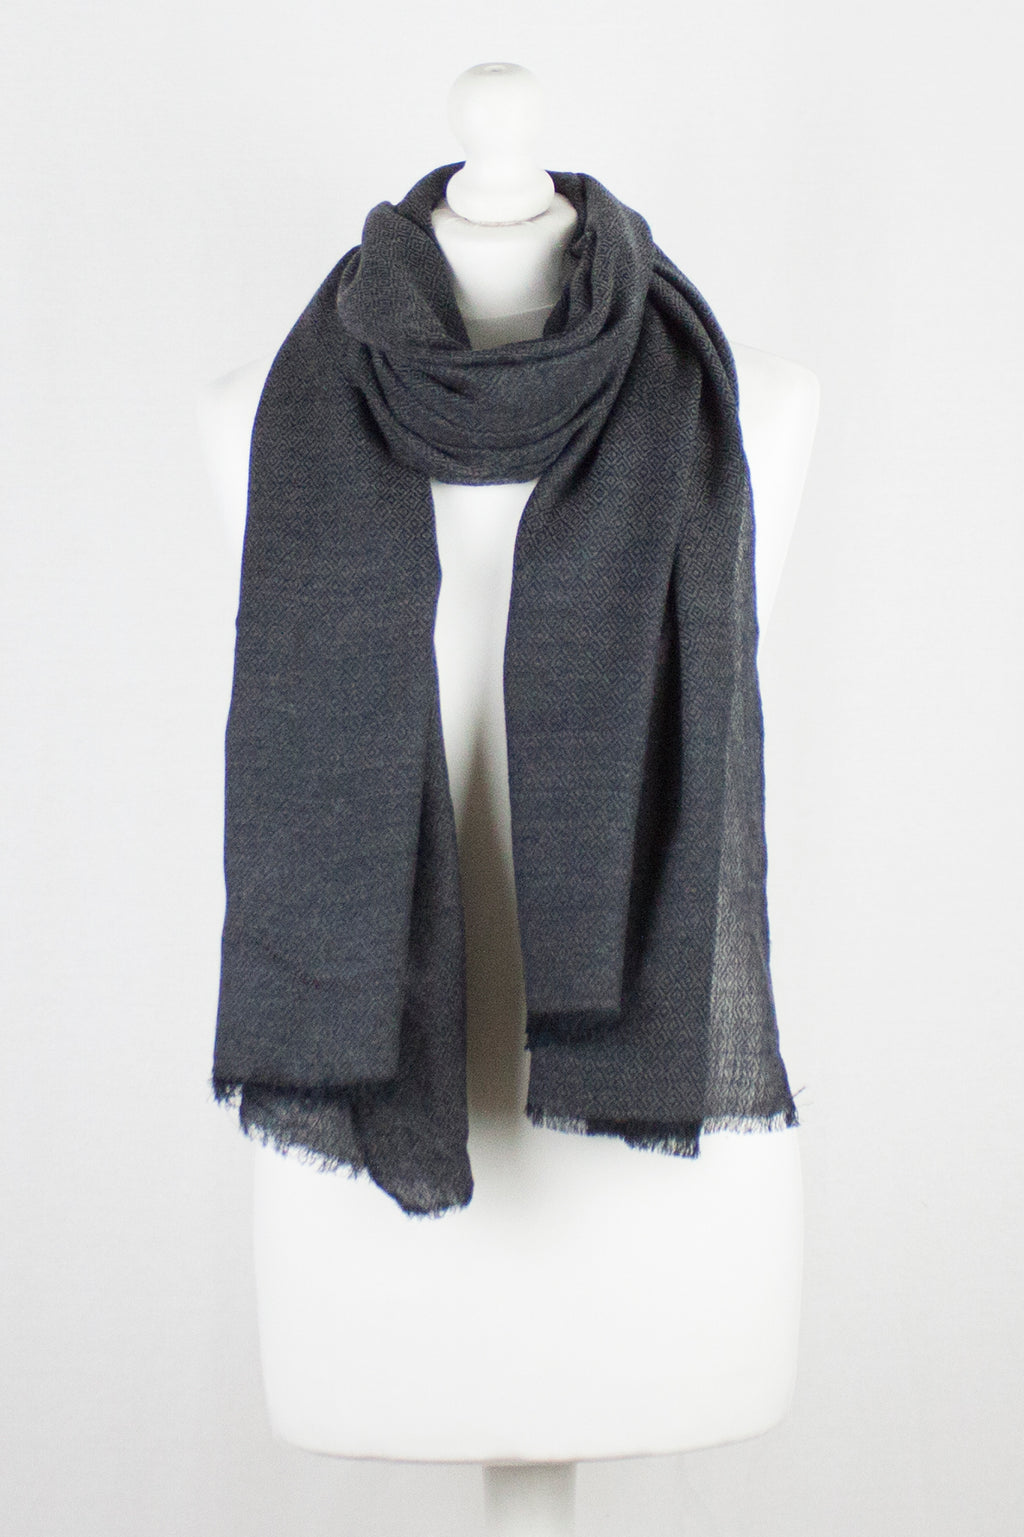 Diamond Weave Two Tone Merino Wool Scarf - Charcoal